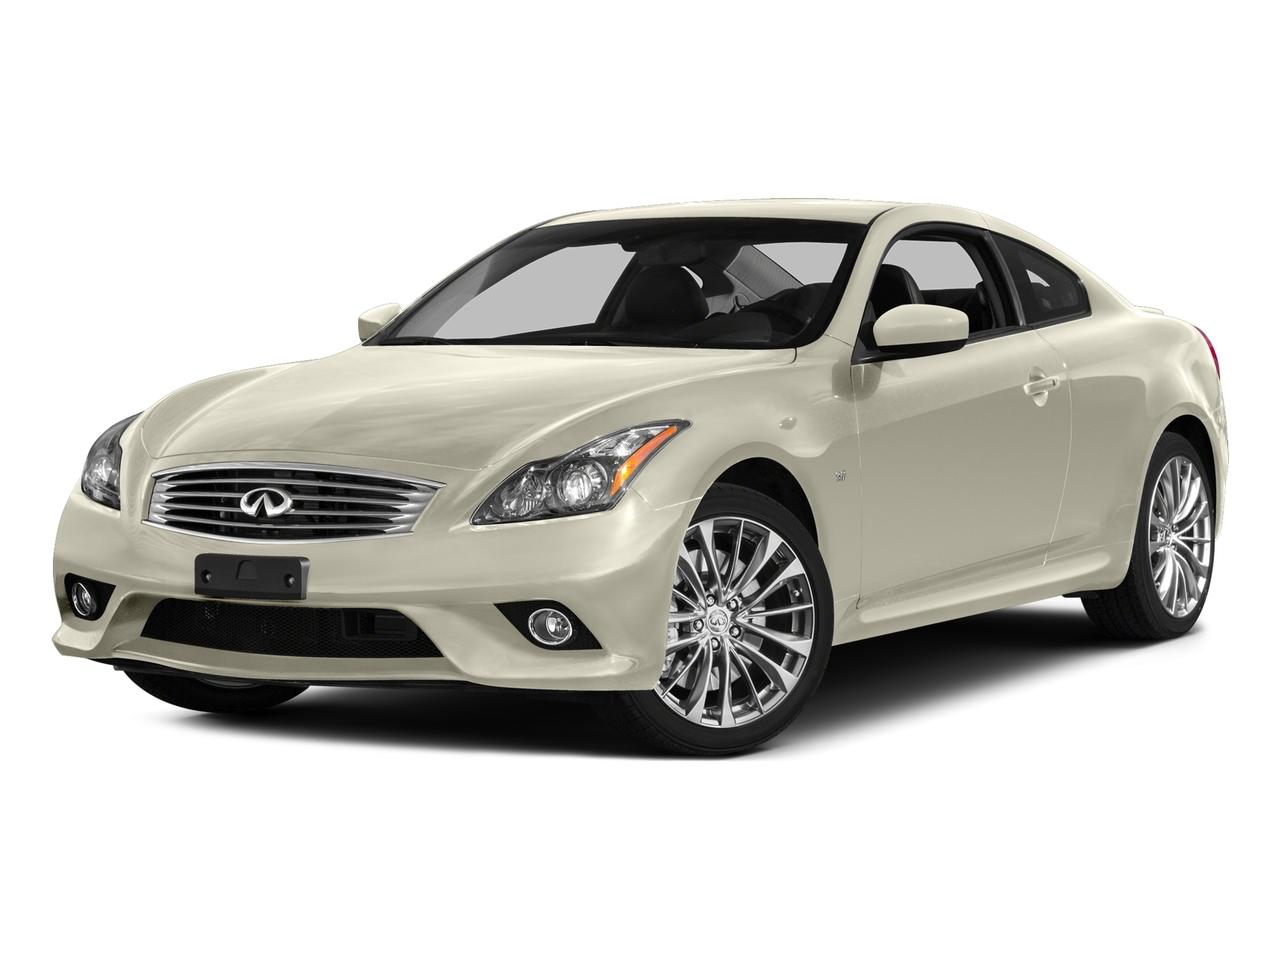 2015 INFINITI Q60 Vehicle Photo in Trevose, PA 19053